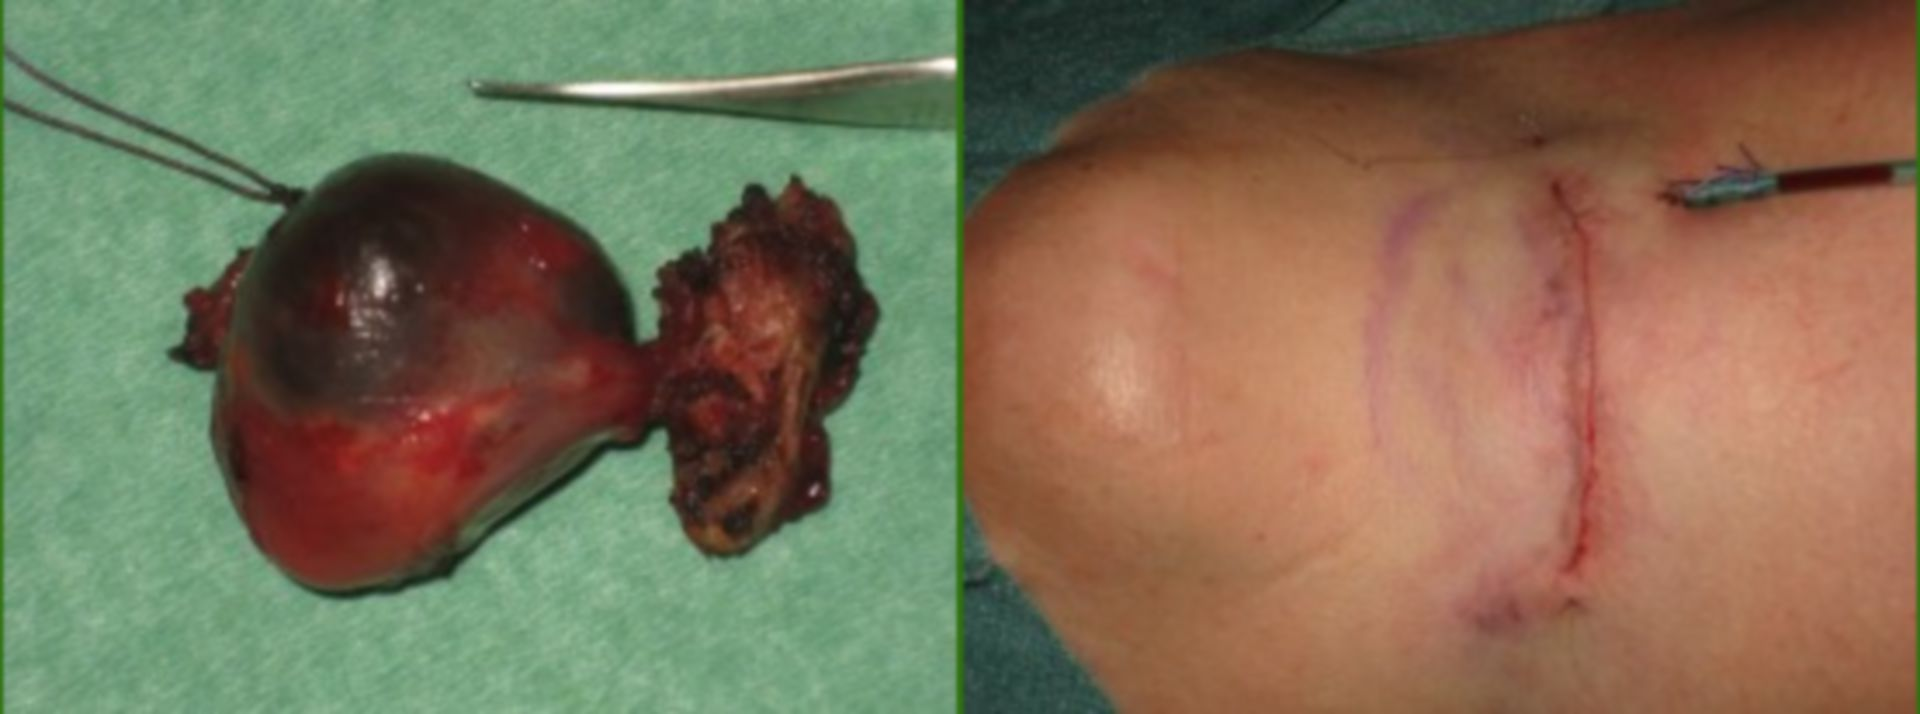 Operation technique: Large cyst of the neck